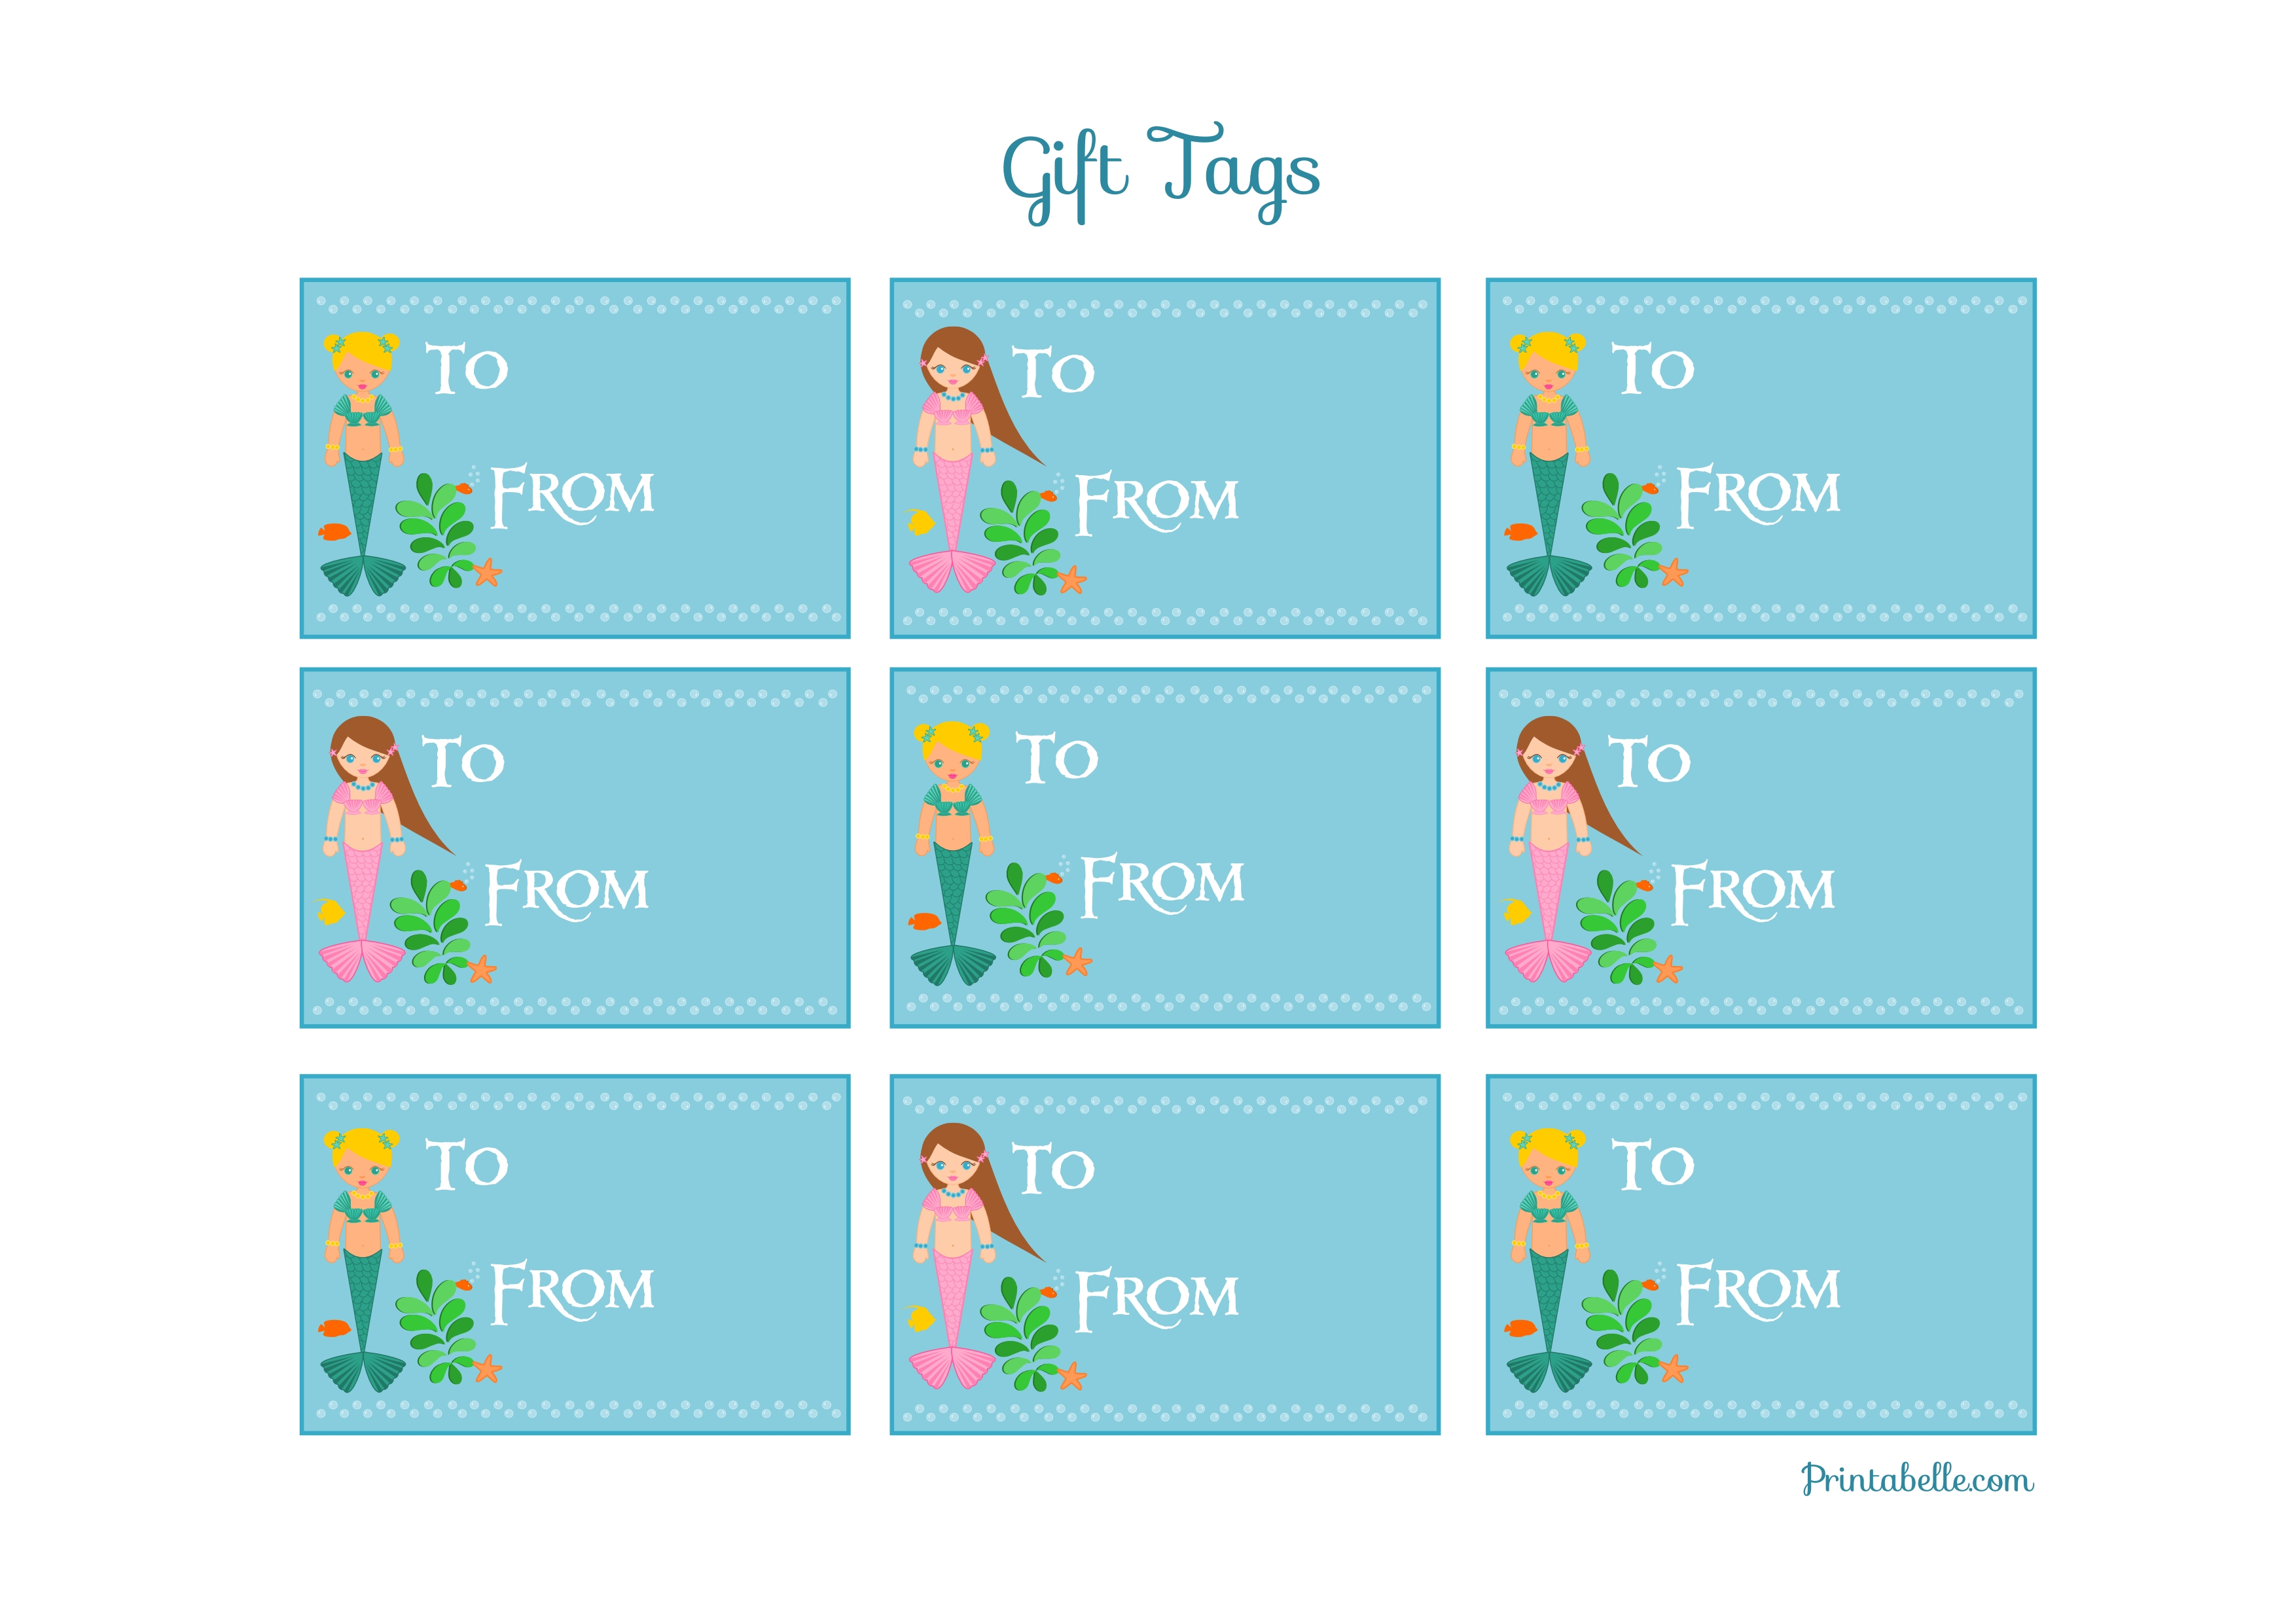 Free printable gift tags personalized ukrandiffusion free printable gift tags personalized birthday tags template kays makehauk co maxwellsz